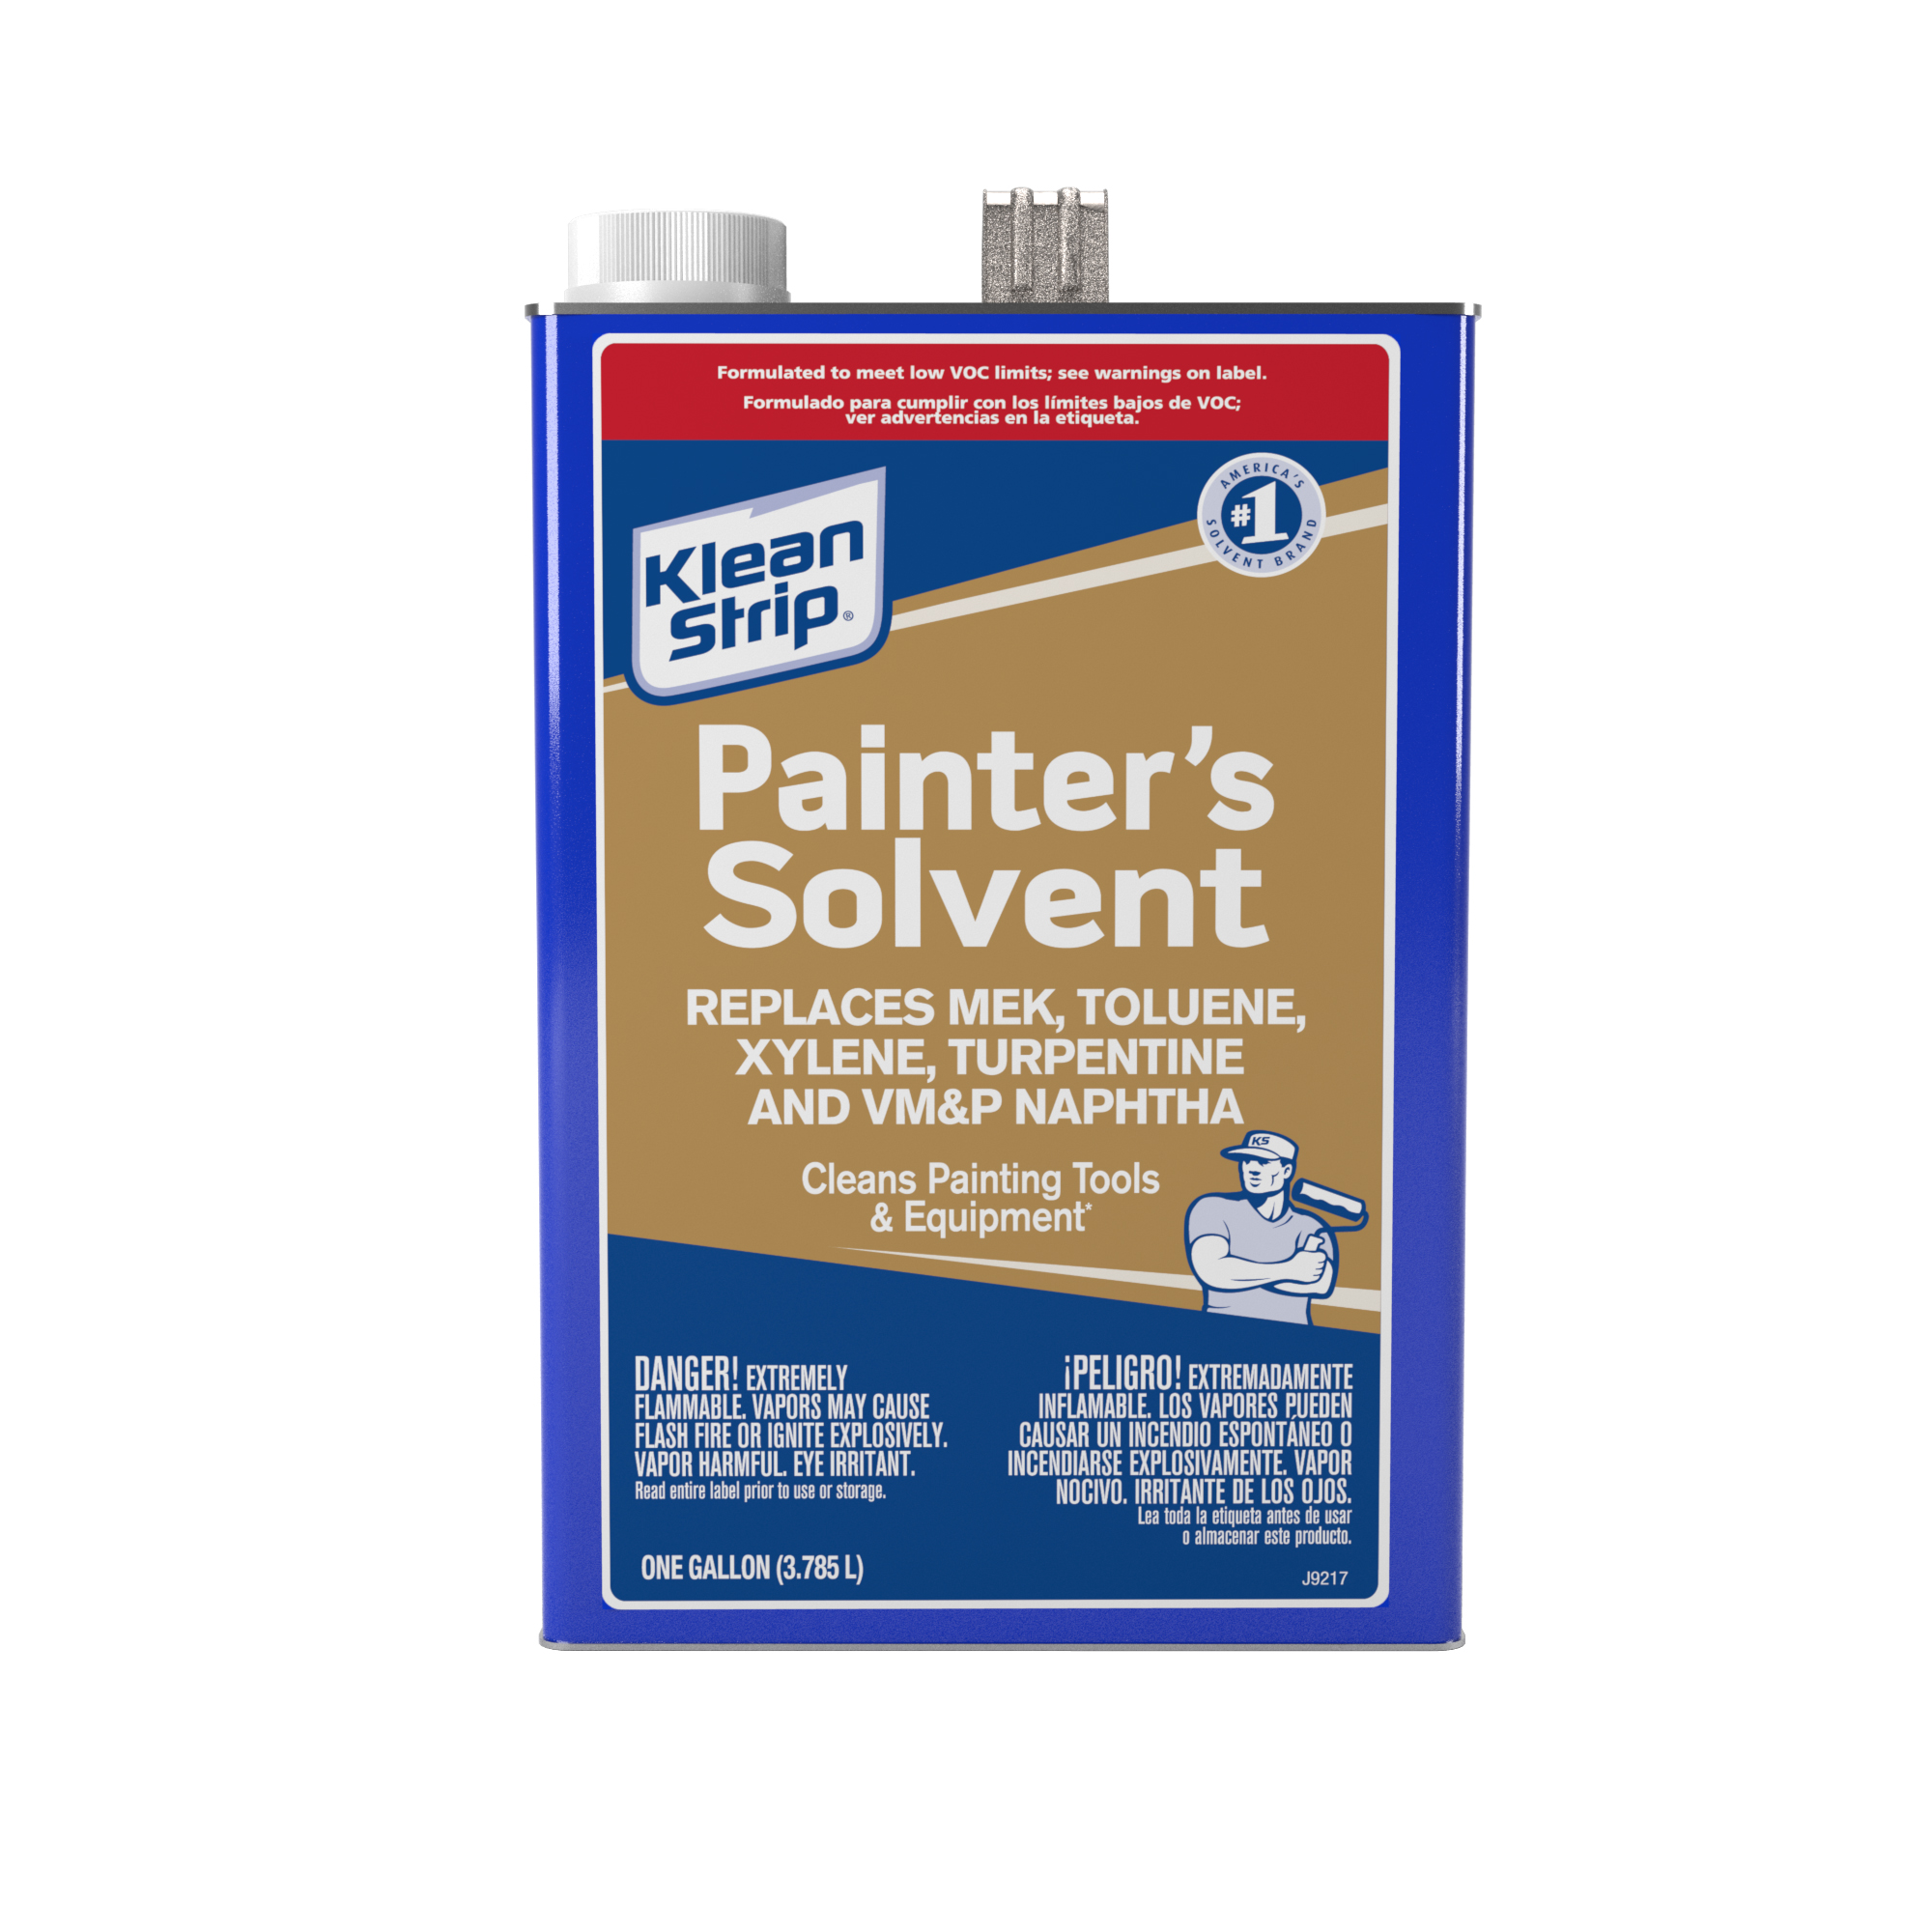 Painter's Solvent SCAQMD